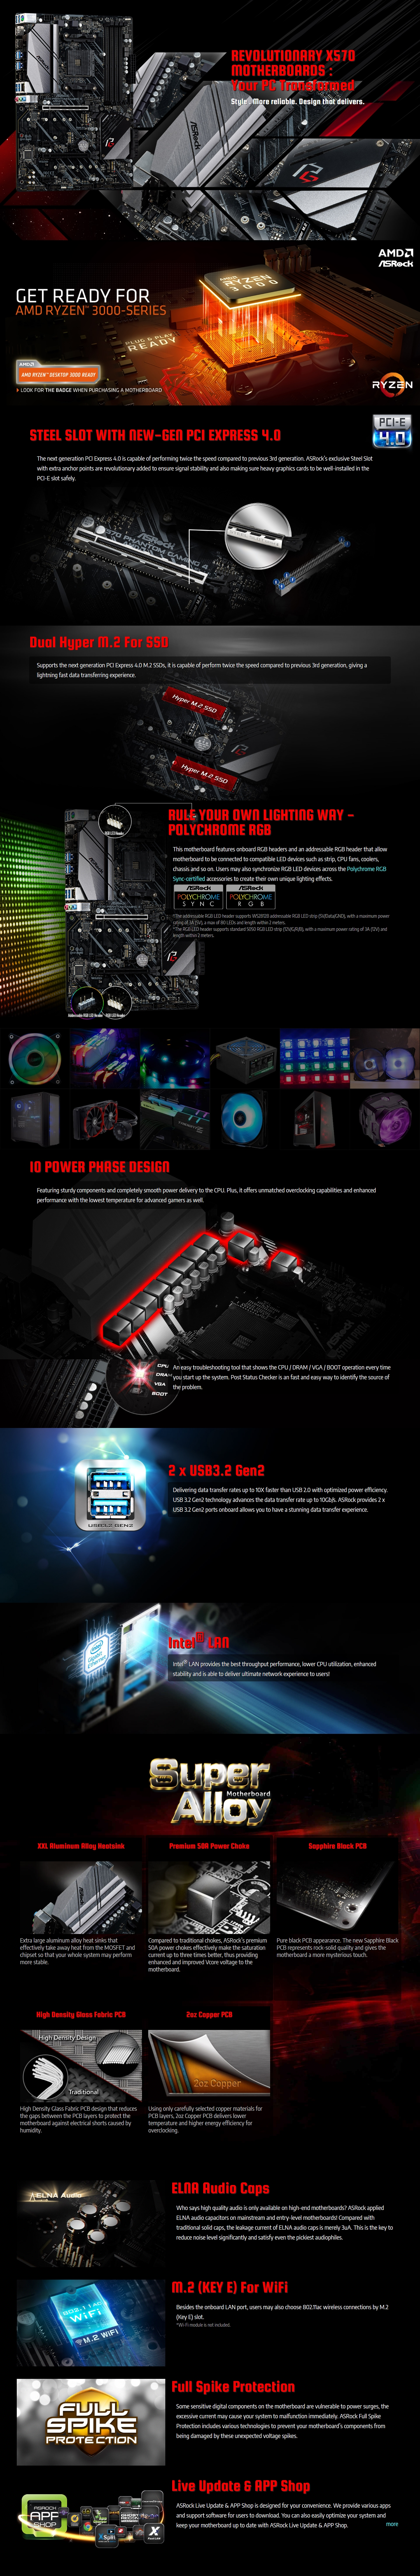 A large marketing image providing additional information about the product ASRock X570 Phantom Gaming 4 ATX AM4 Desktop Motherboard - Additional alt info not provided